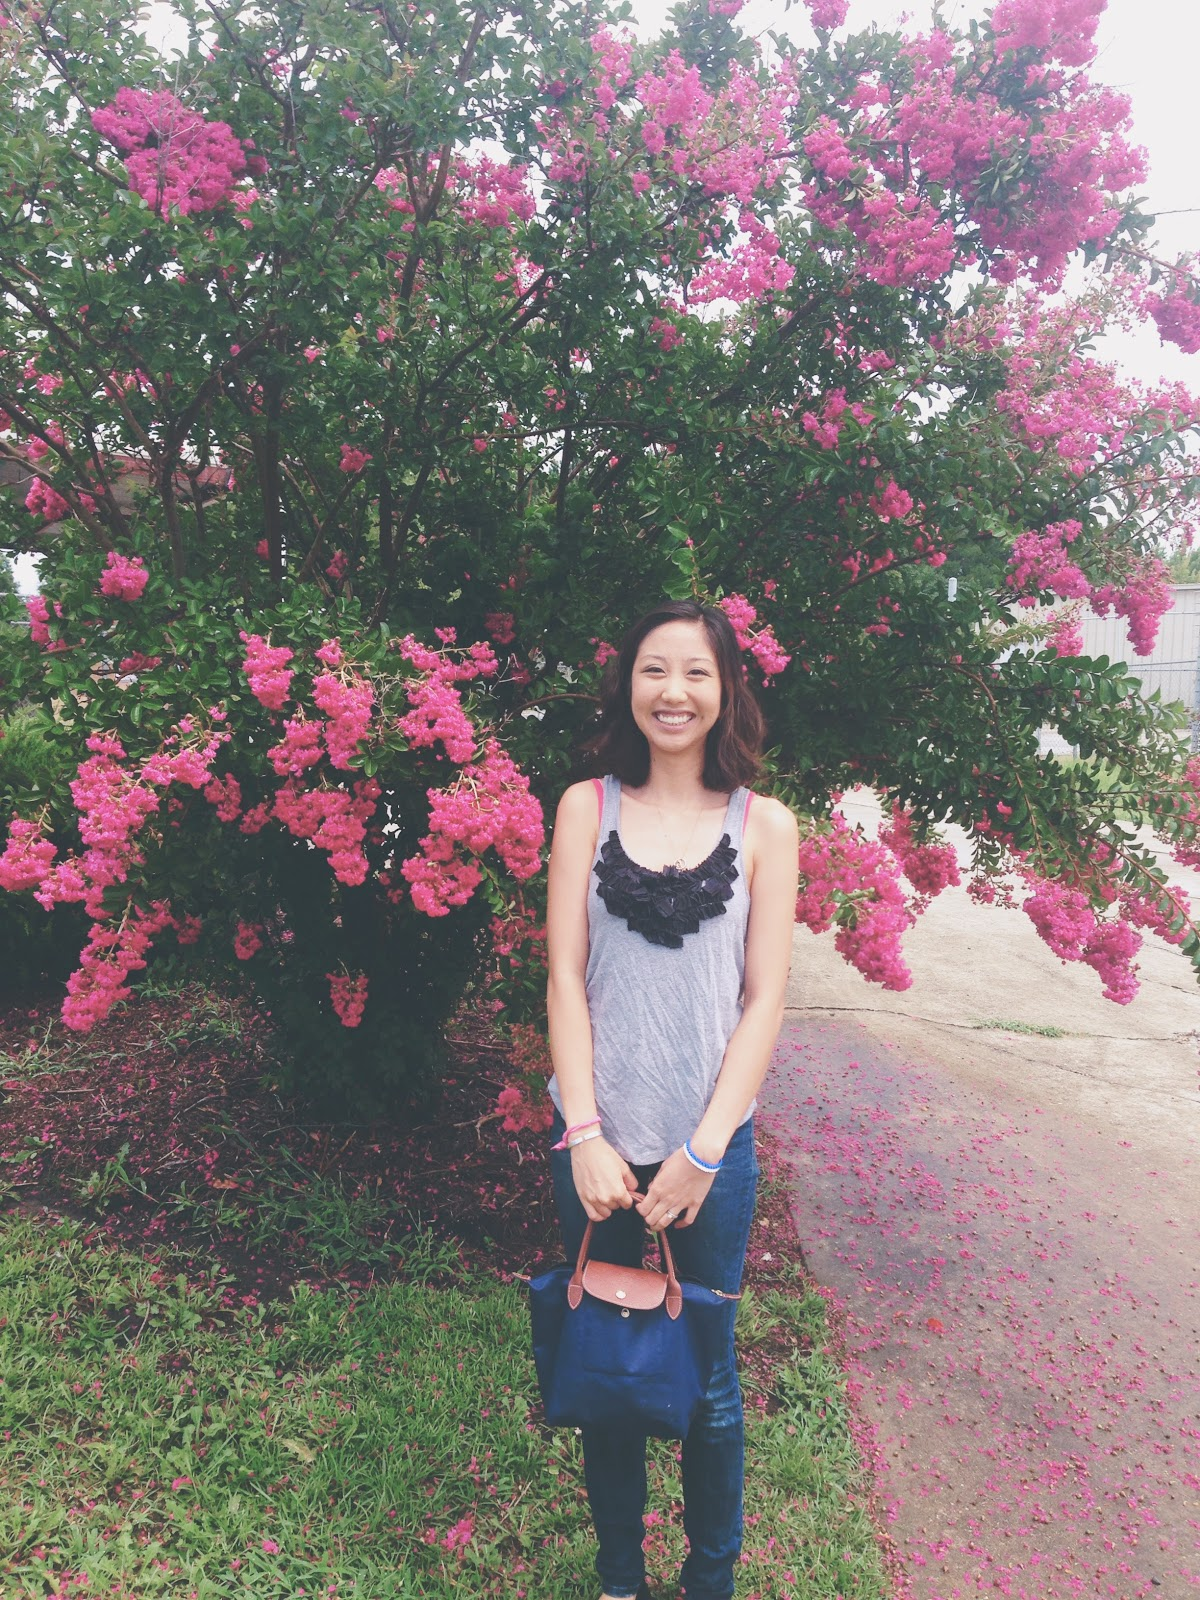 me in front of pink flowers